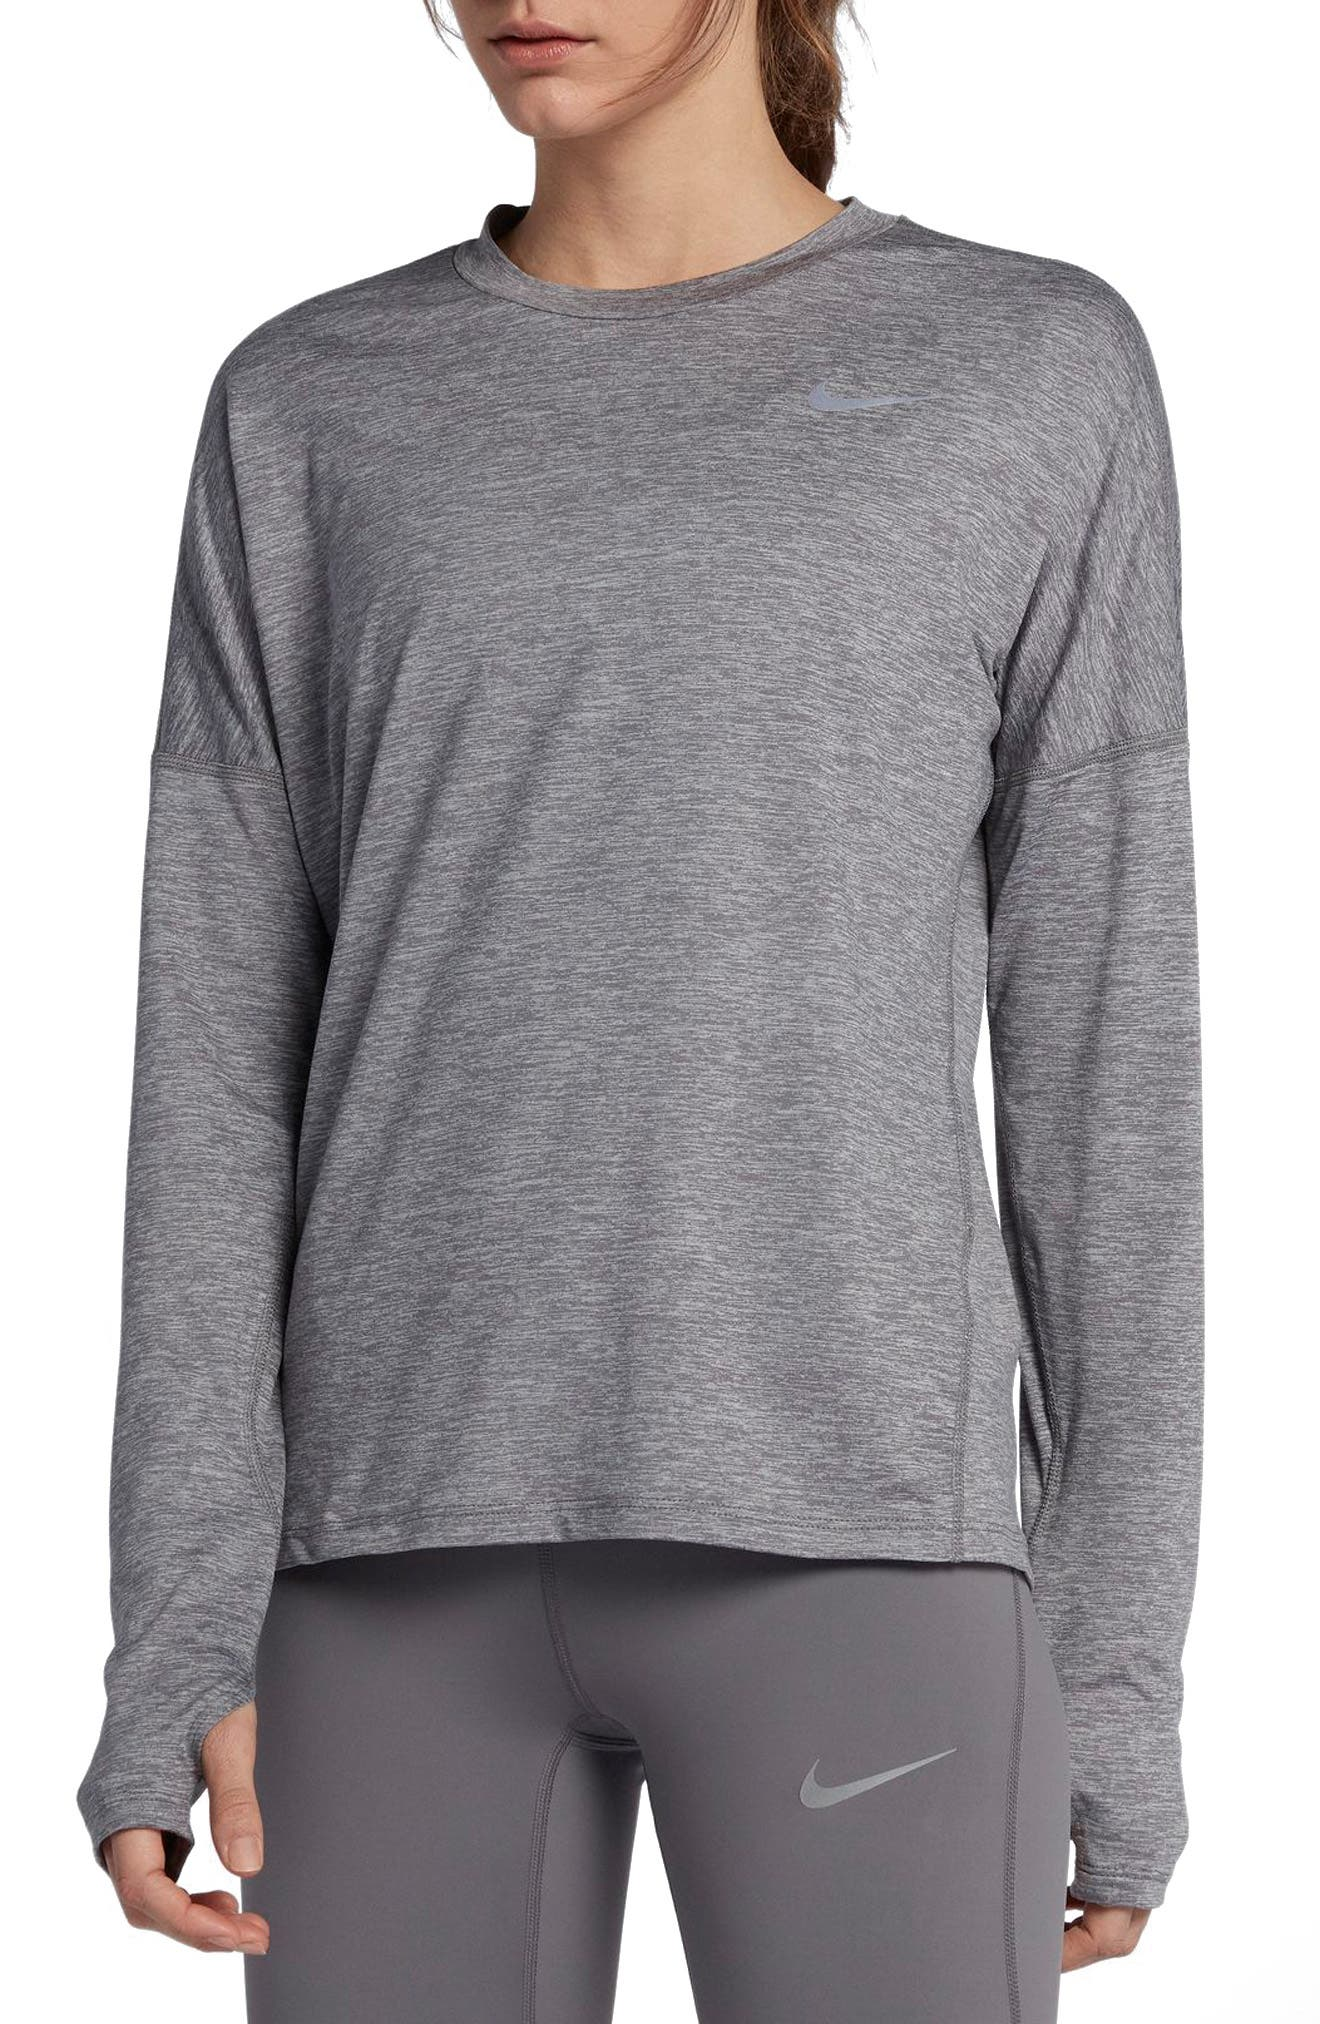 Dry Element Long Sleeve Top,                         Main,                         color,